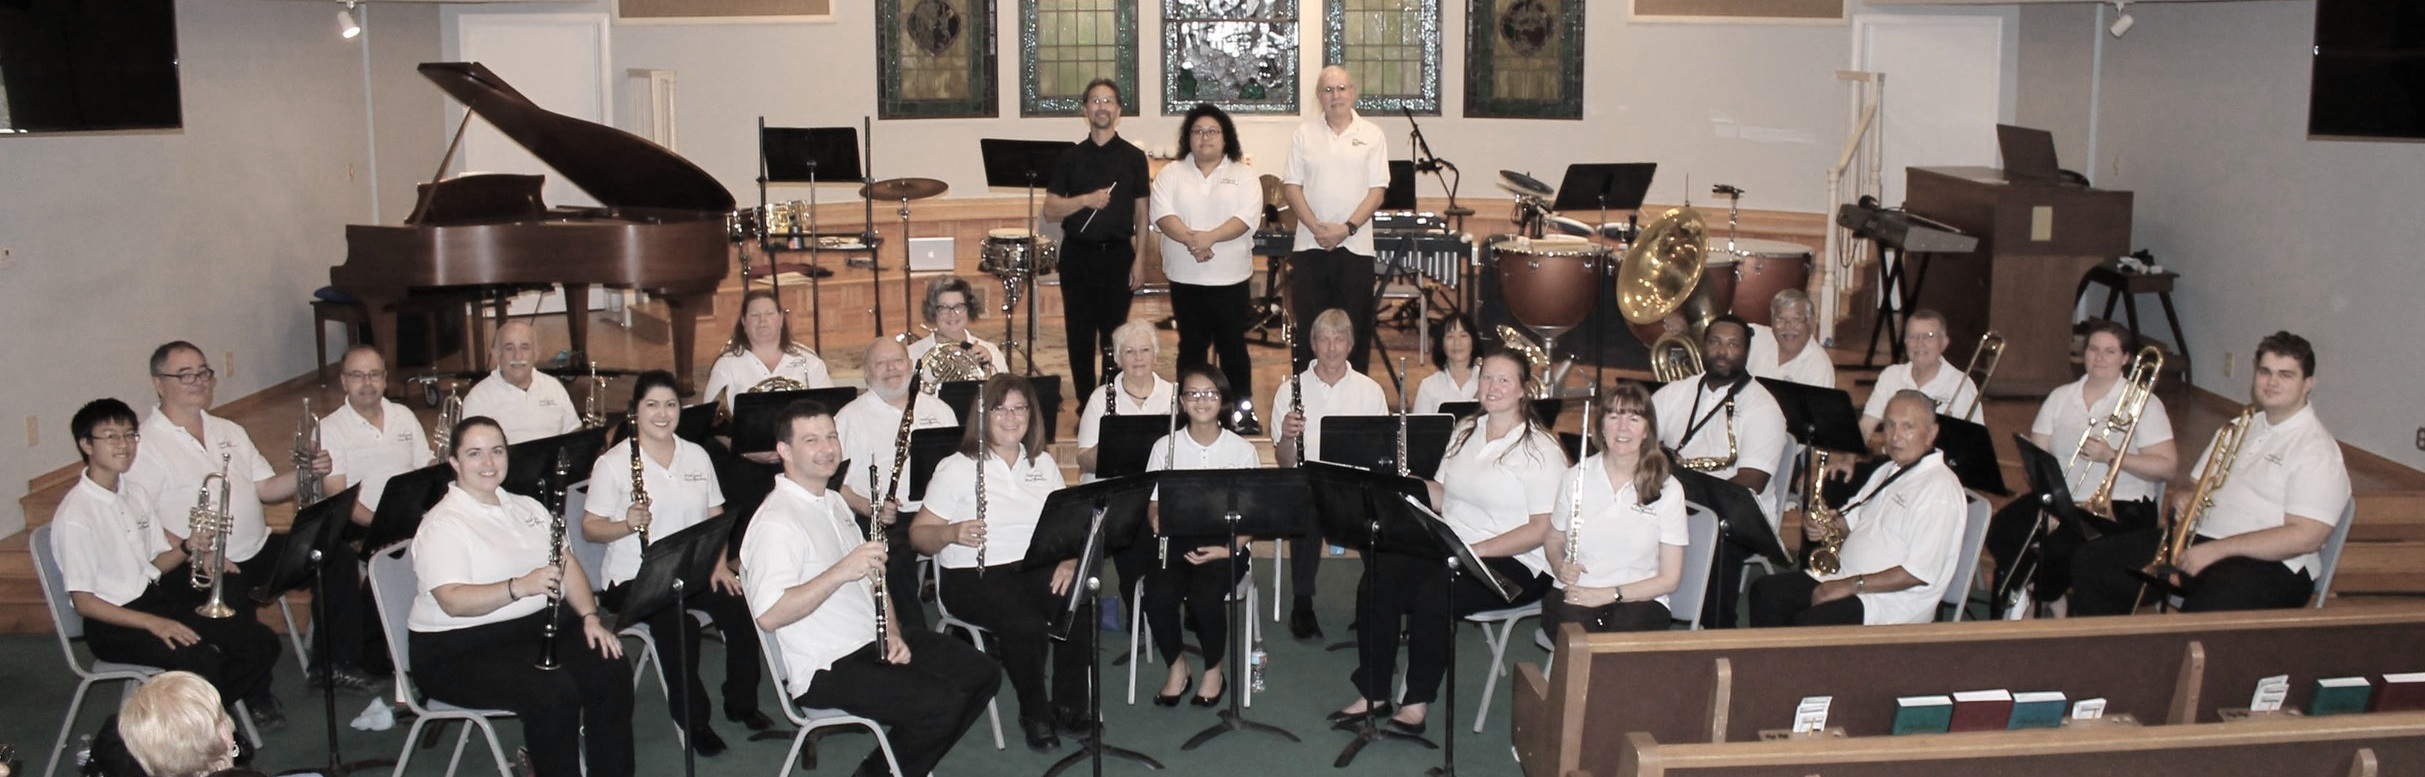 - Established in 1992, the Morgan Hill Wind Symphony (MHWS) community band prides itself on performing a varied mix of music; from classical, big band, swing and show tunes, to the occasional march! The MHWS seeks to enhance the level of musical art in the South Bay community, to foster the importance of music in one's life through performance, to provide an opportunity for community involvement both as a group and as individuals, and finally, to provide the opportunity for musicians to practice and perform in a relaxed, supportive environment.MHWS first started with the premise of